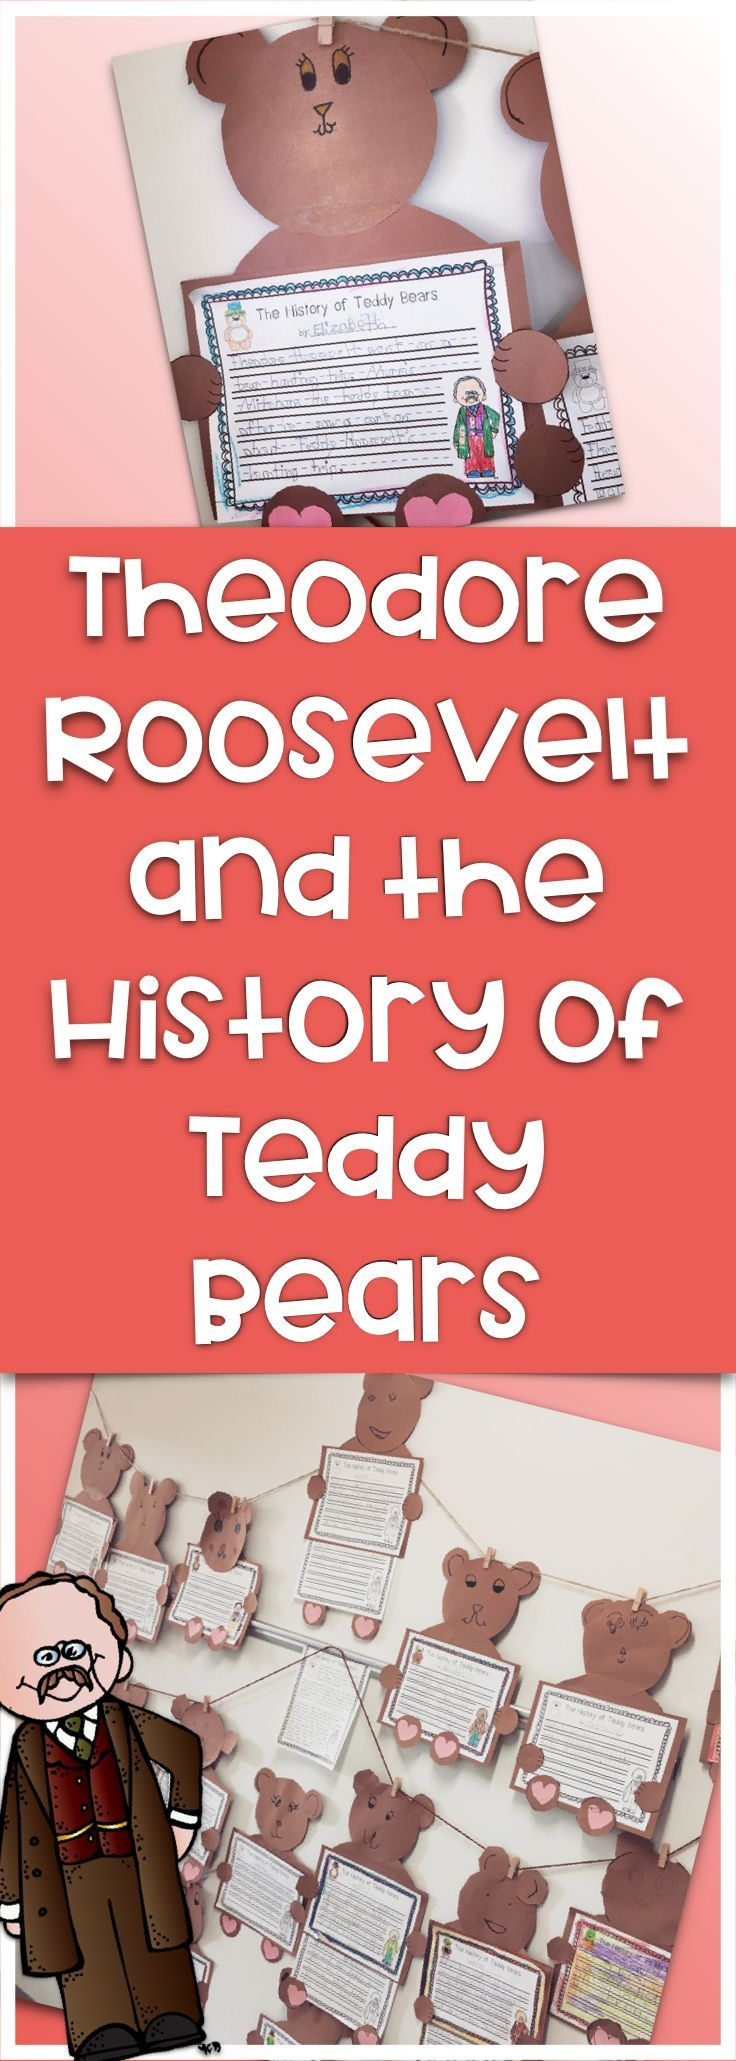 Did you know that teddy bears, one of the most beloved children's toys of all time, were inspired by President Theodore Roosevelt? This packet includes a one- page reading passage about the history of teddy bears, comprehension questions, and a writing and craft activity. This is a great way to combine Presidents' Day and Valentines' Day learning into one fun lesson!